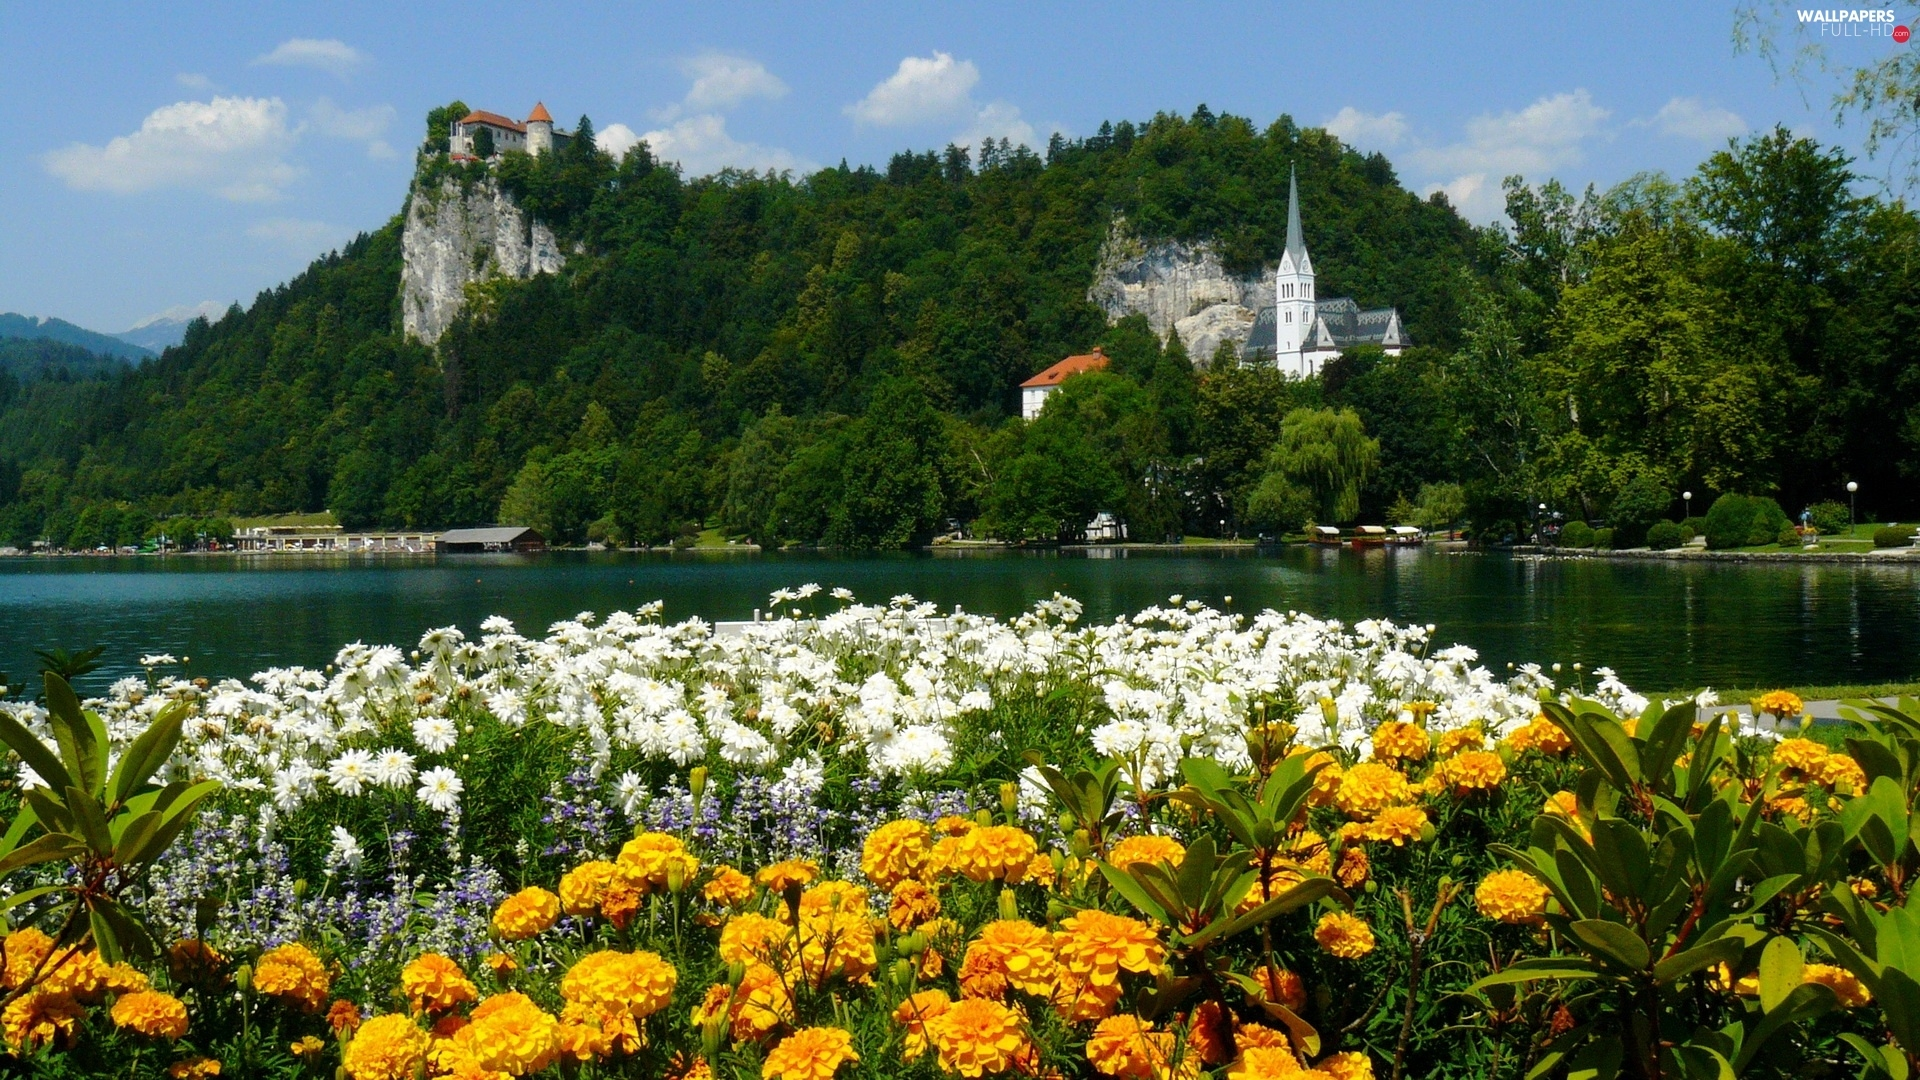 trees, Flowers, River, viewes, Castles